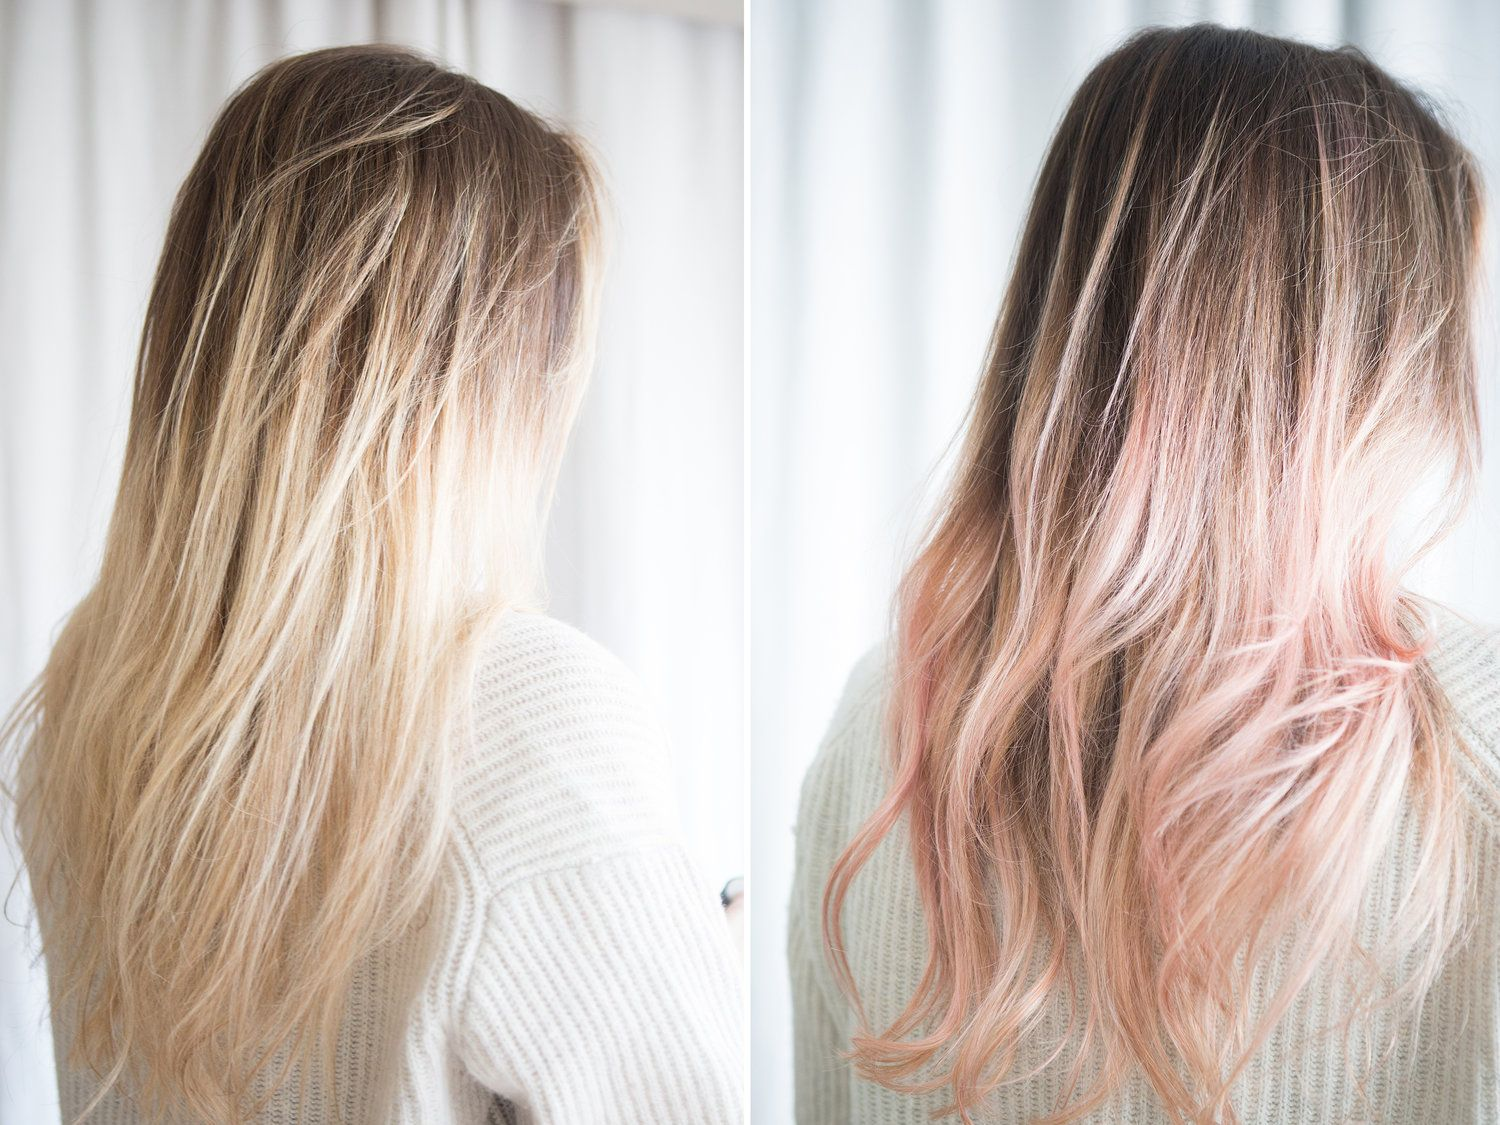 Test Lab Kristen Ess For Target Rose Gold Tint Blog Design Confetti Hair Tint Sporty Hairstyles Creative